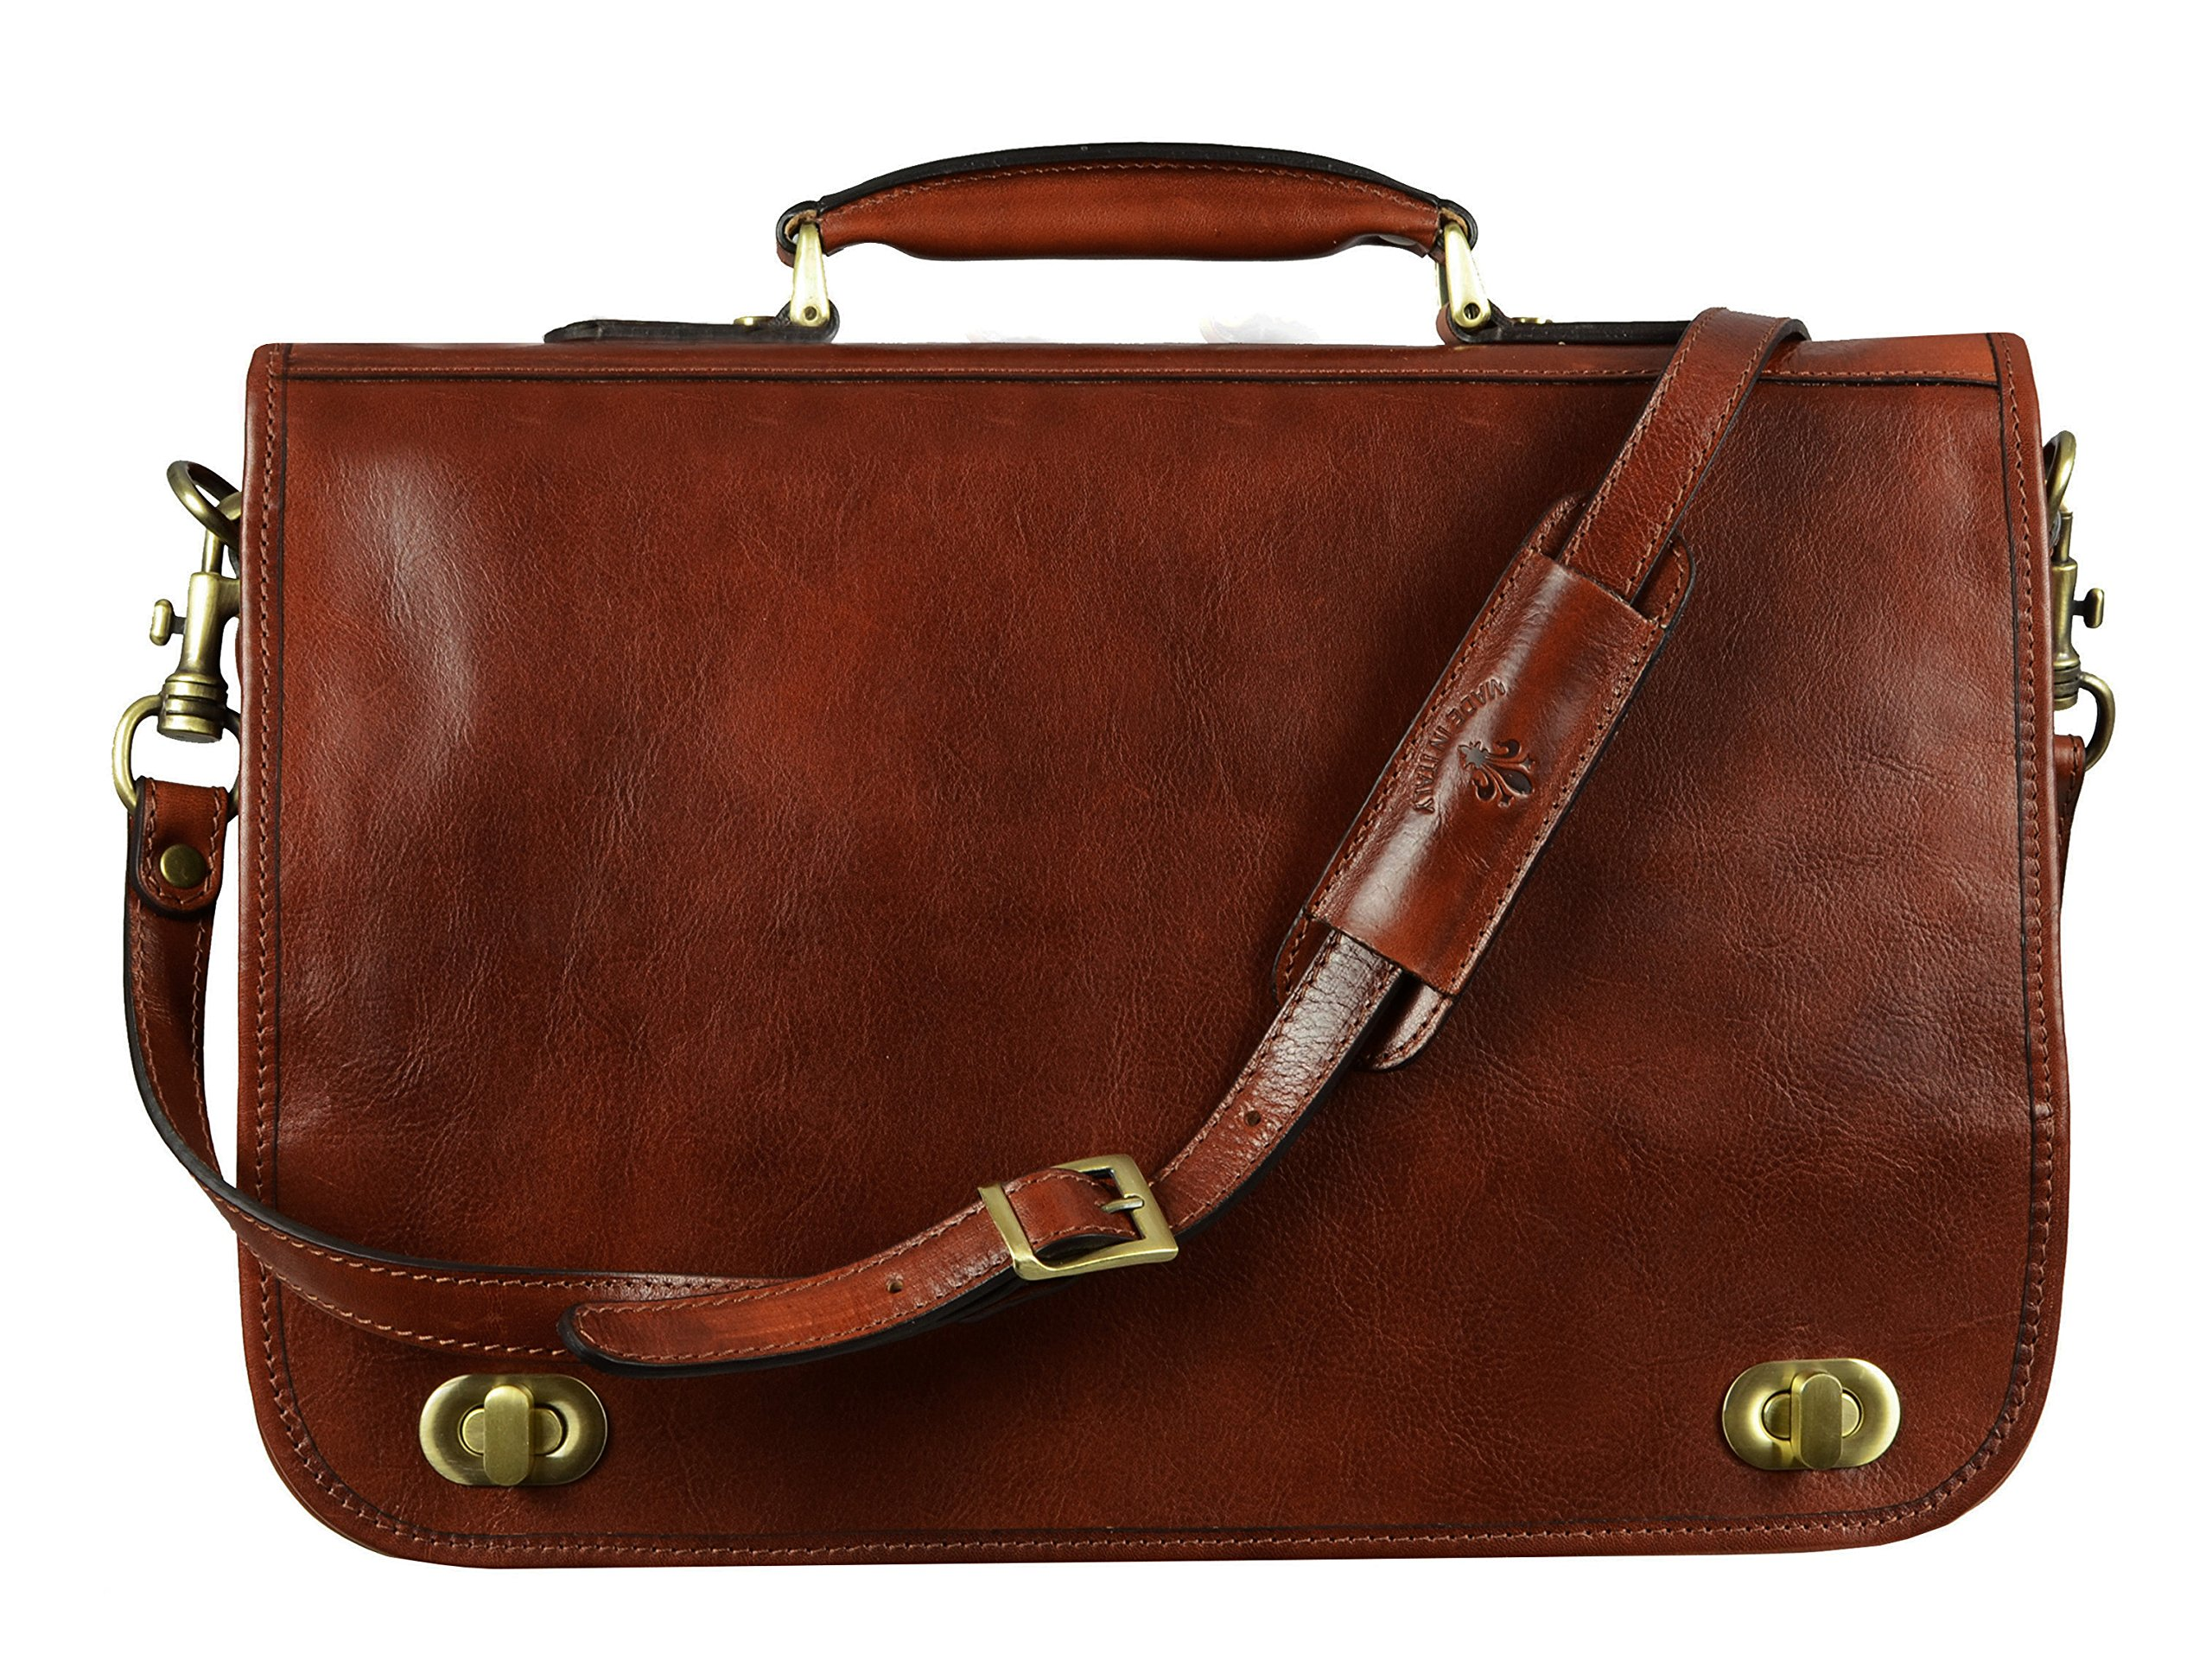 Leather Briefcase,Laptop Bag, Leather Attache Medium Brown - Time Resistance by Time Resistance